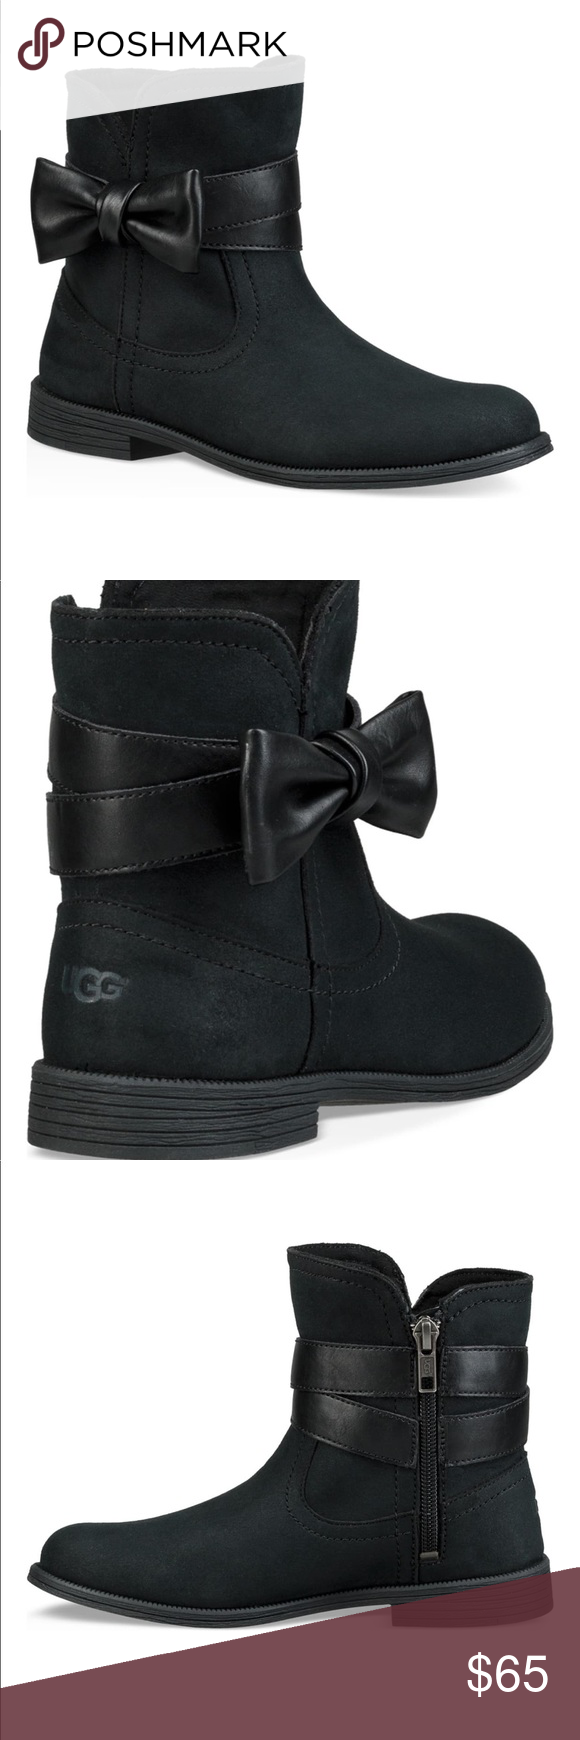 Ugg Joanie Bow Boot New, without box. Big girls size 5 or adult women's size 7. Low, short black boot with bow and zipper. UGG Shoes Boots #uggbootsoutfitblackgirl